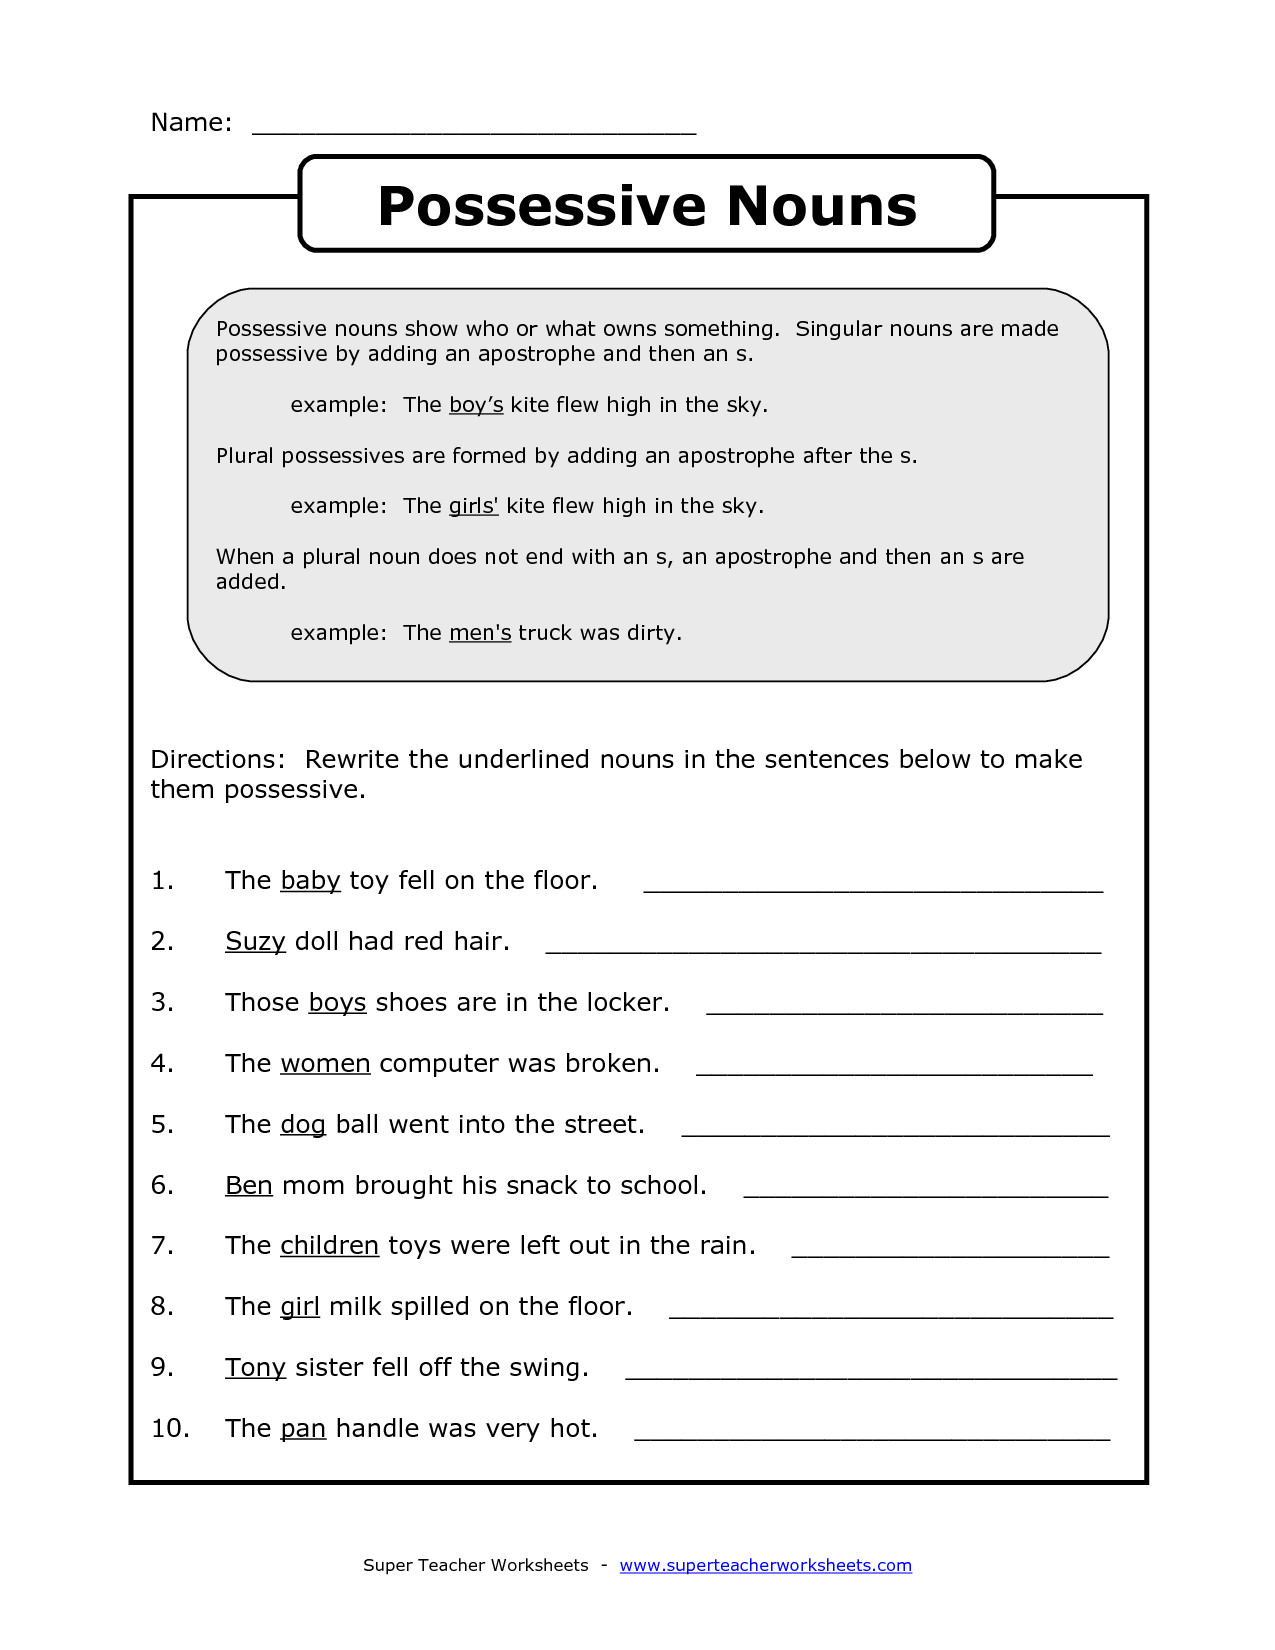 Noun Worksheets Middle School Possessive Nouns Worksheets Elementary